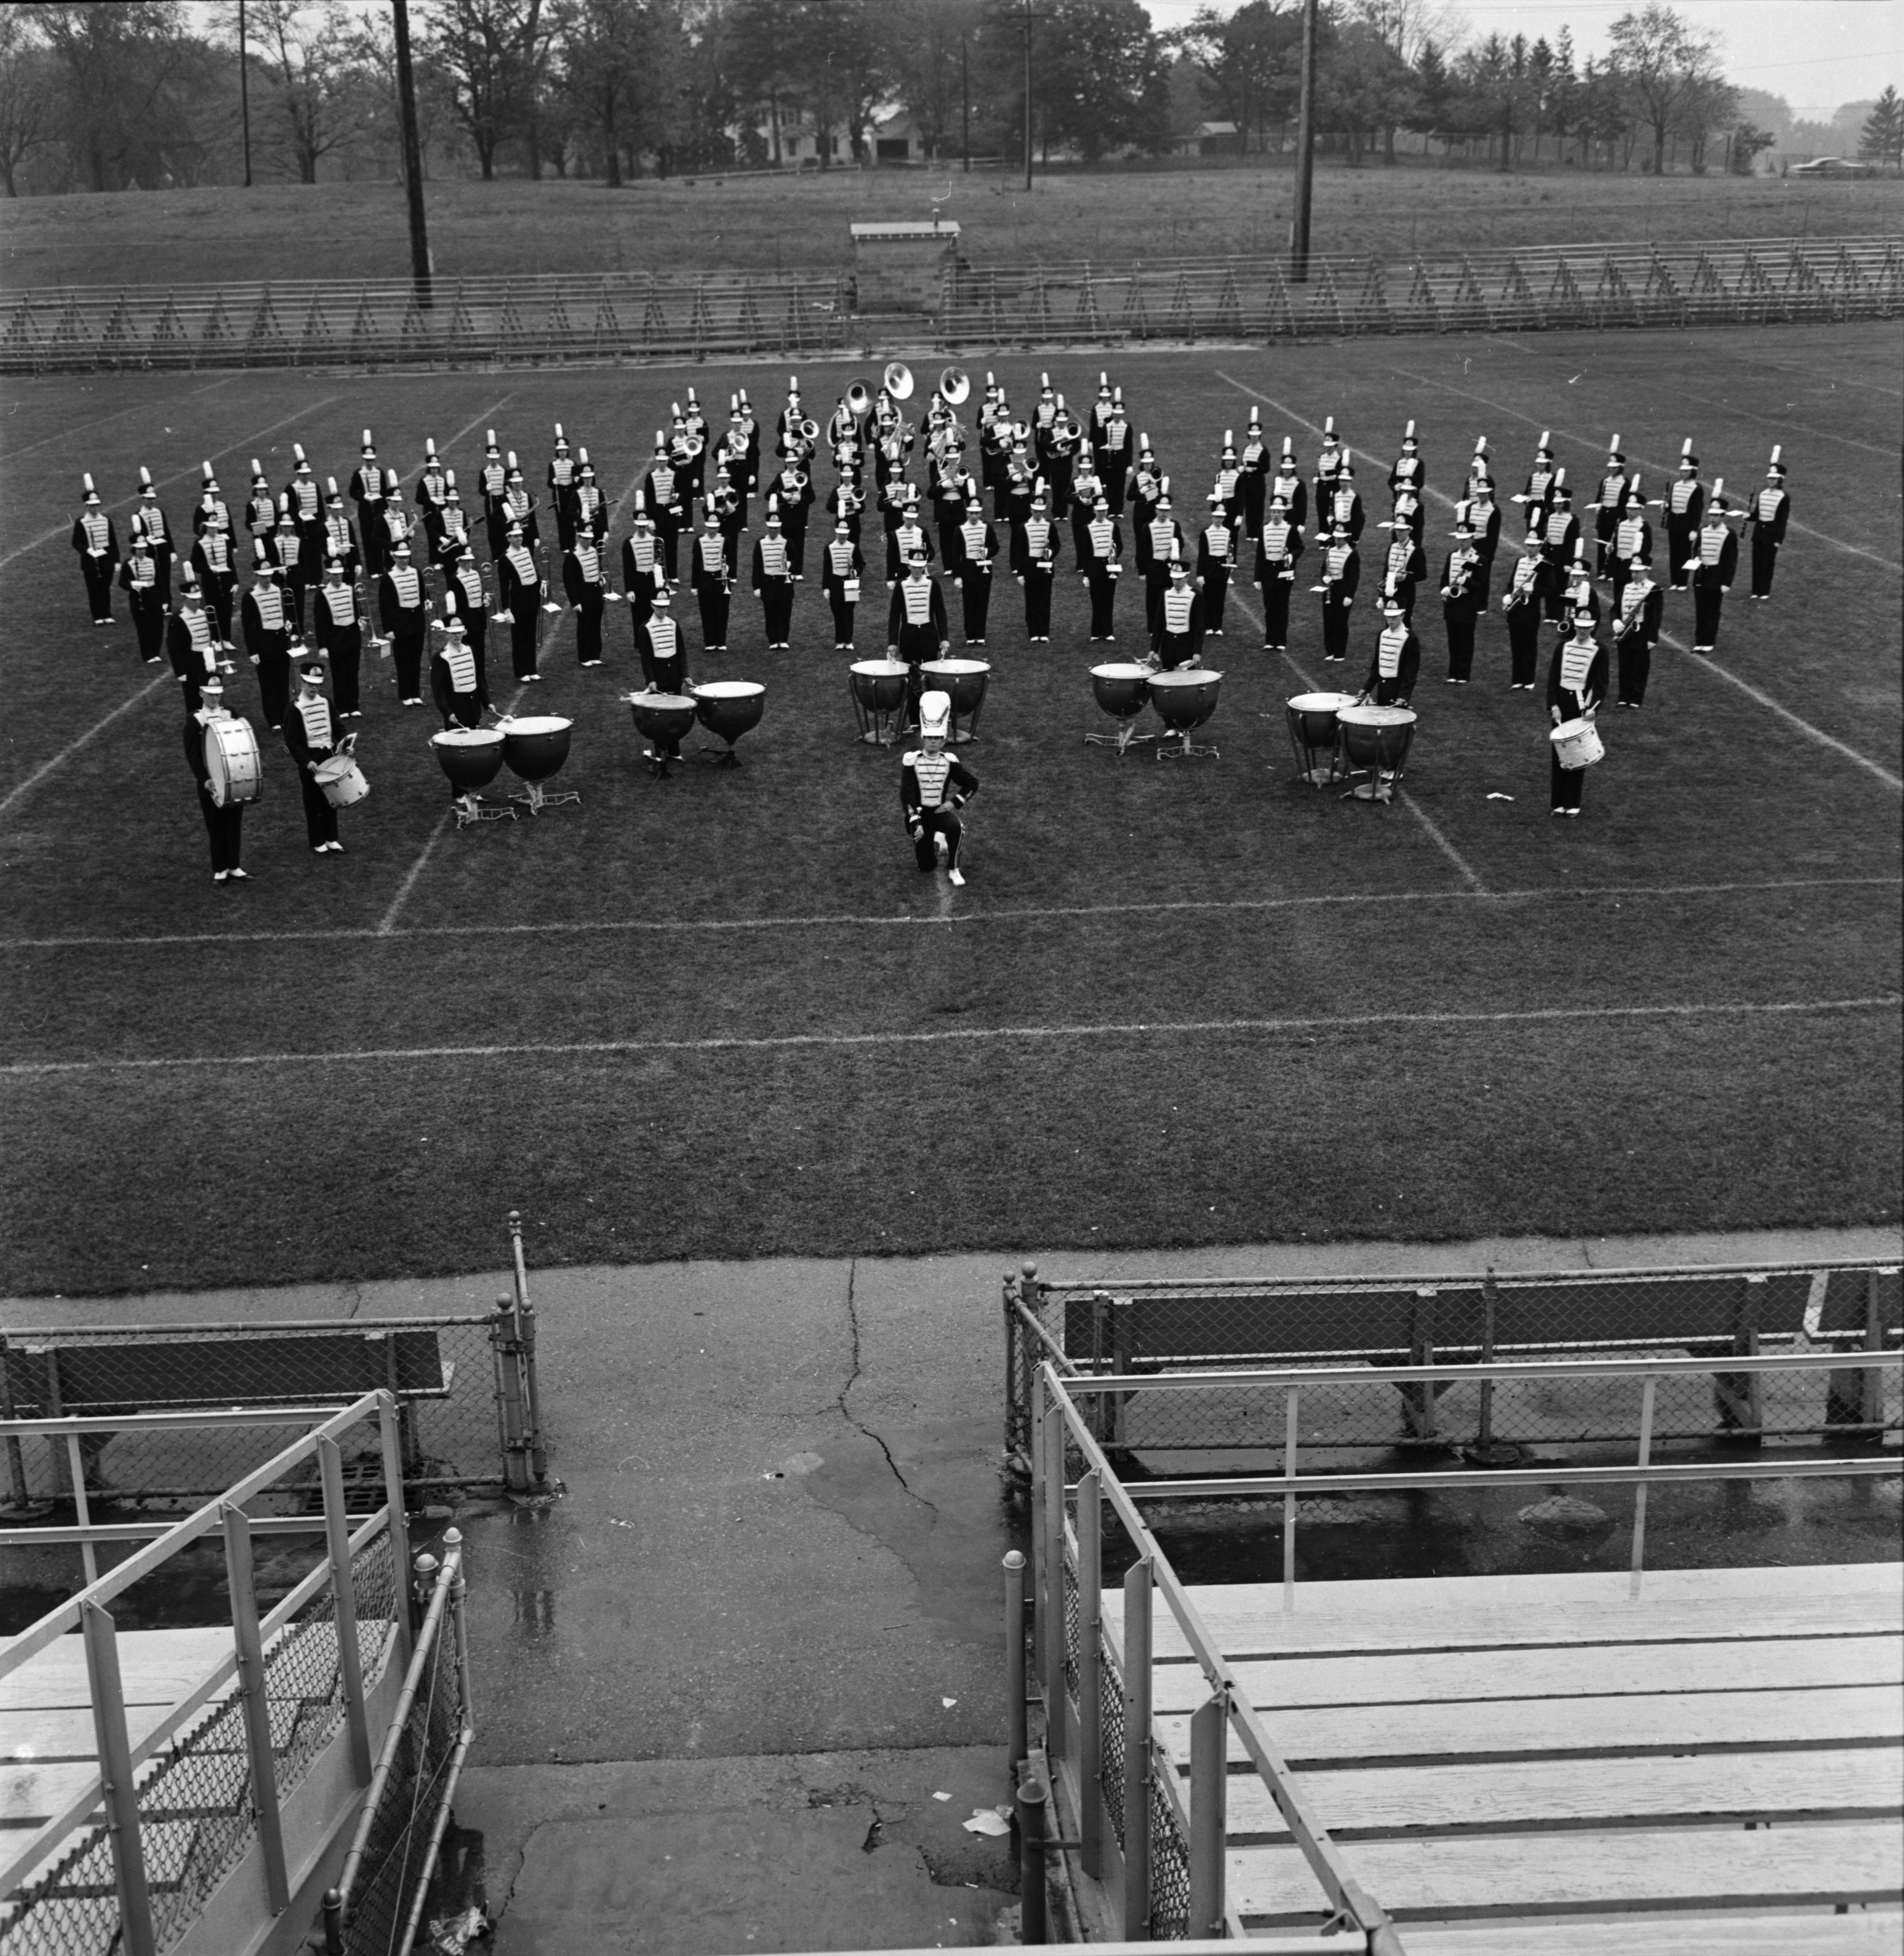 Ann Arbor High School Band, October 1964 image